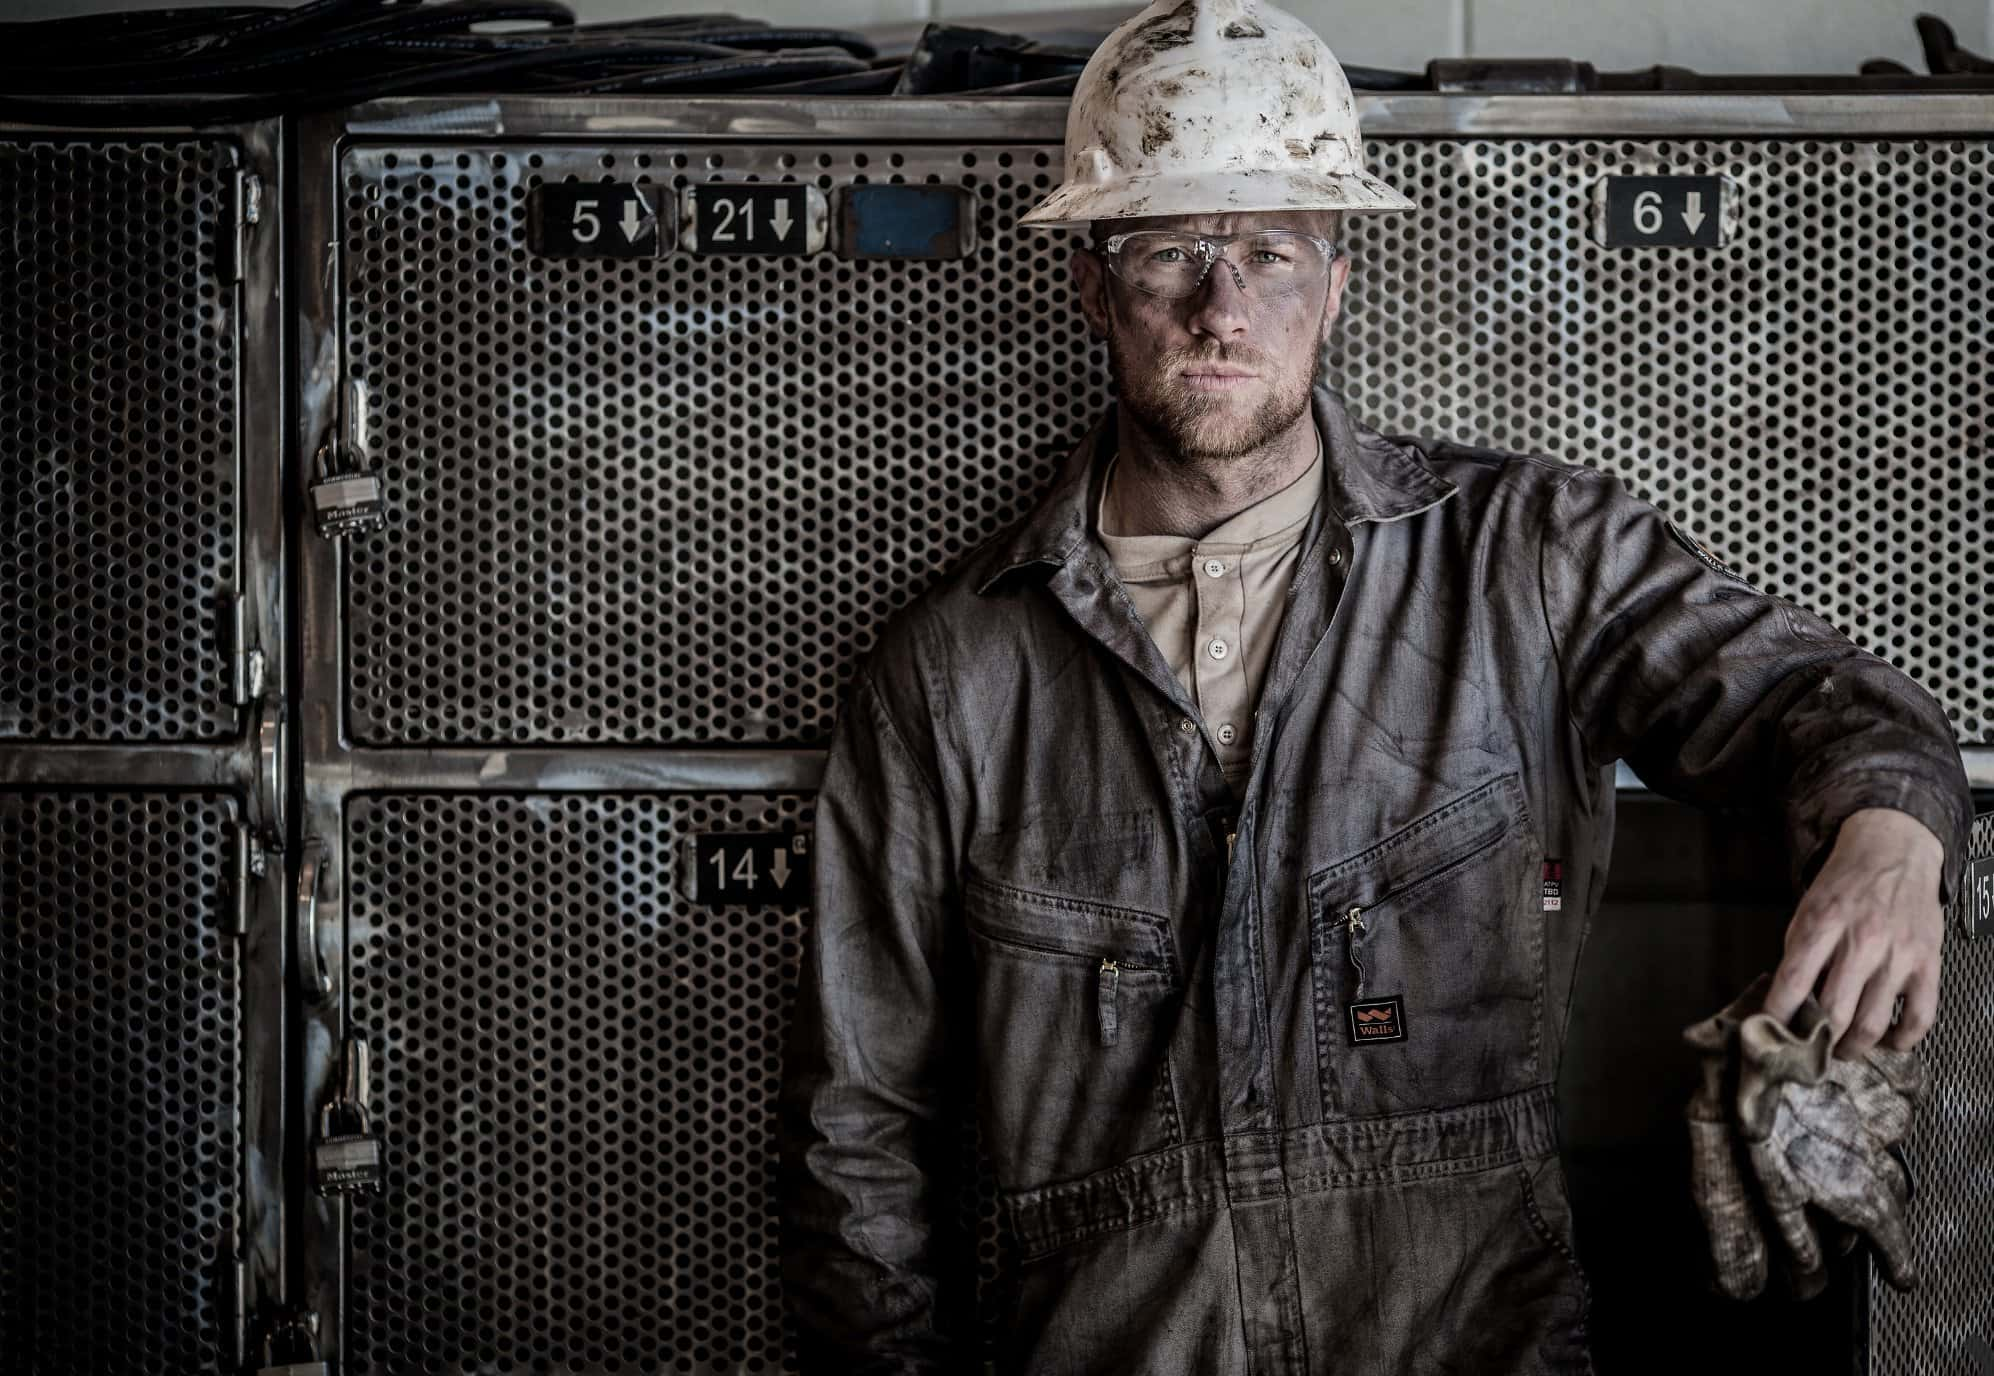 Oil rig model wears a day of dirt on his face and distressed hard hat, henley and work coveralls